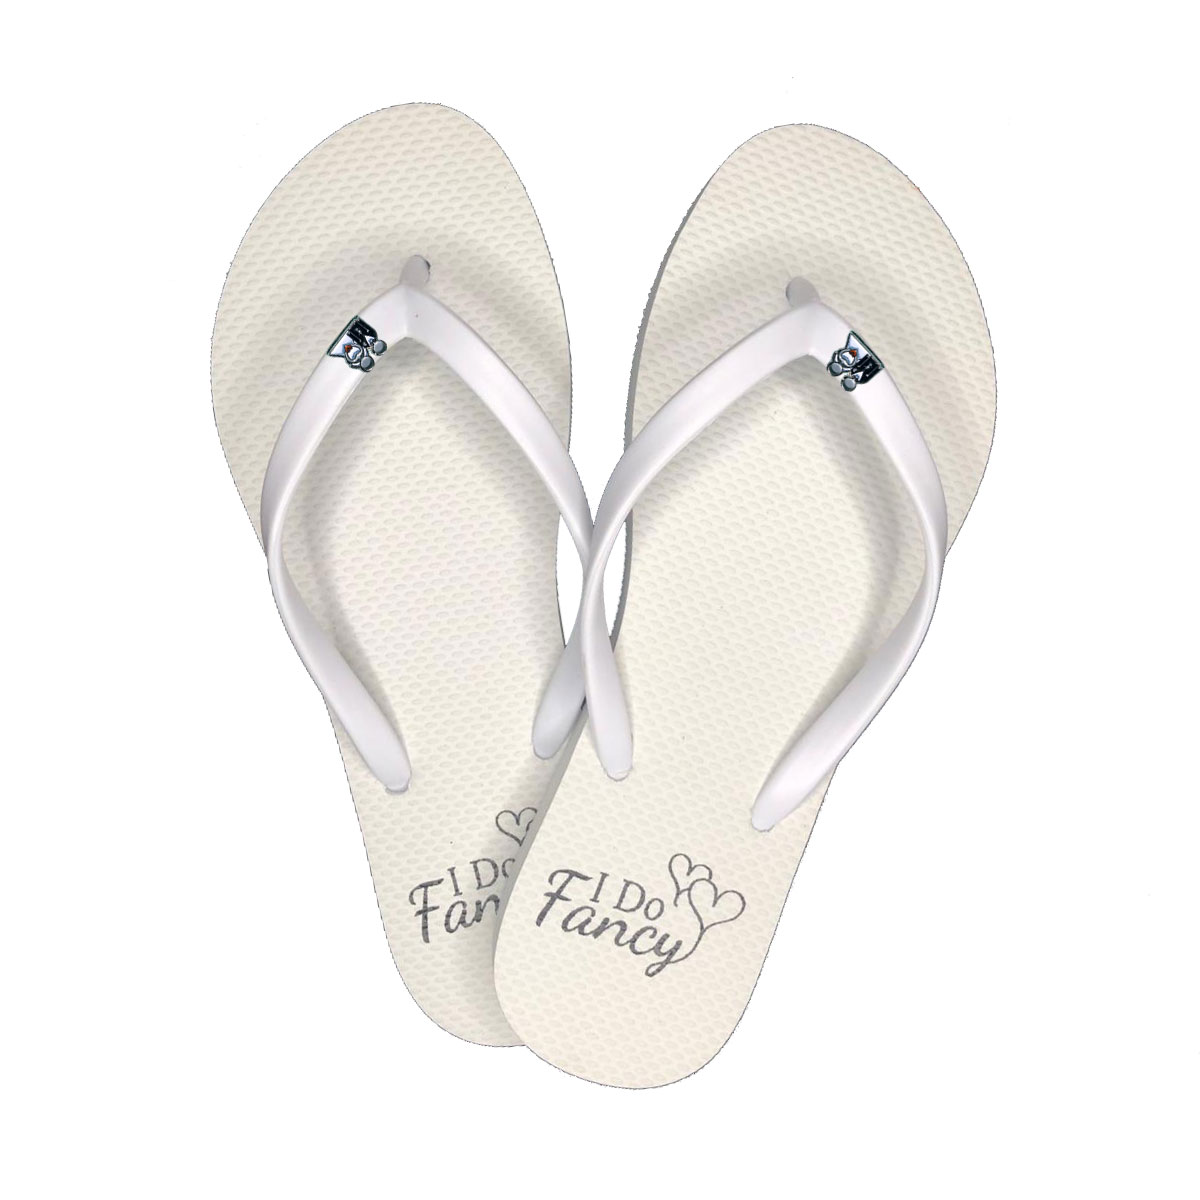 I Do Fancy White Flip-Flops with Silver Bride and Groom Charm Wedding